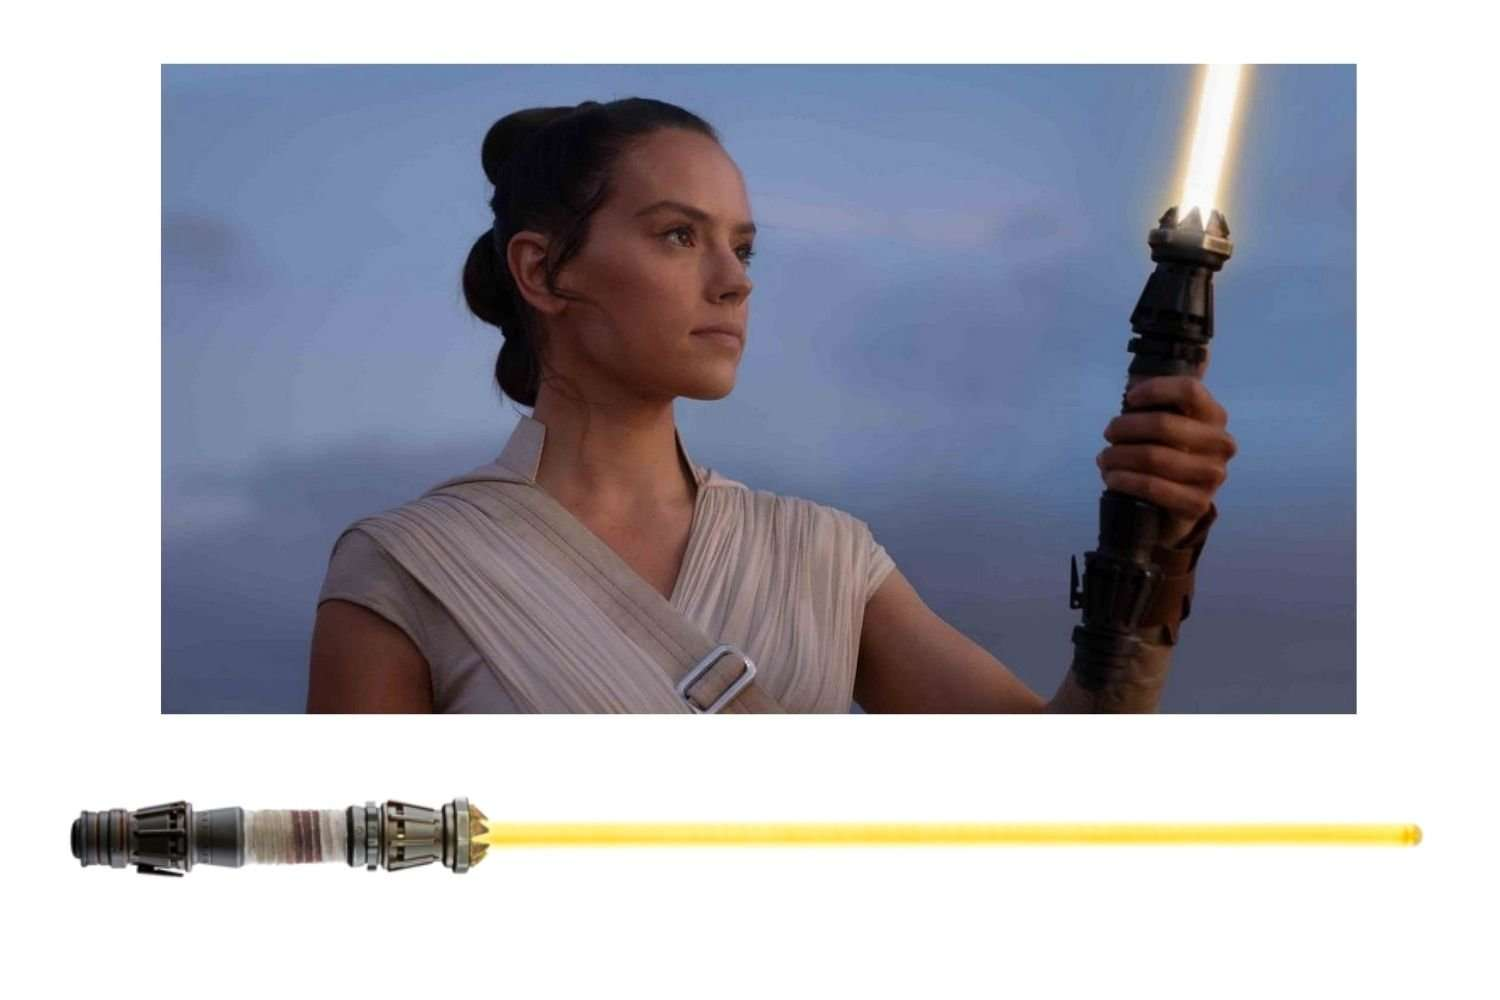 Yellow Lightsabers history and meaning